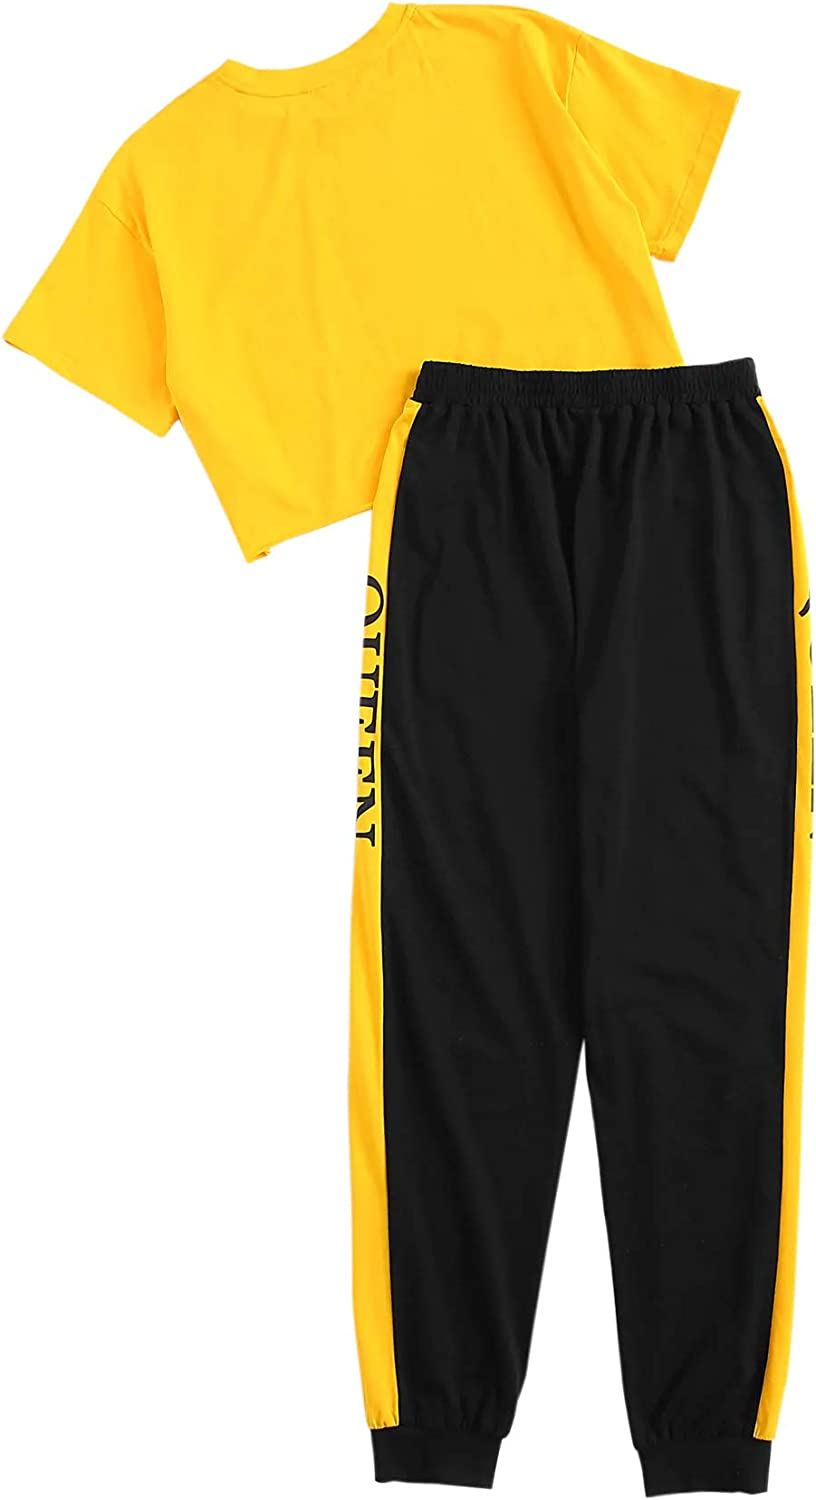 SOLY HUX Womens Sporty Letter Print Short Sleeve Crop Top and Sweatpant Set